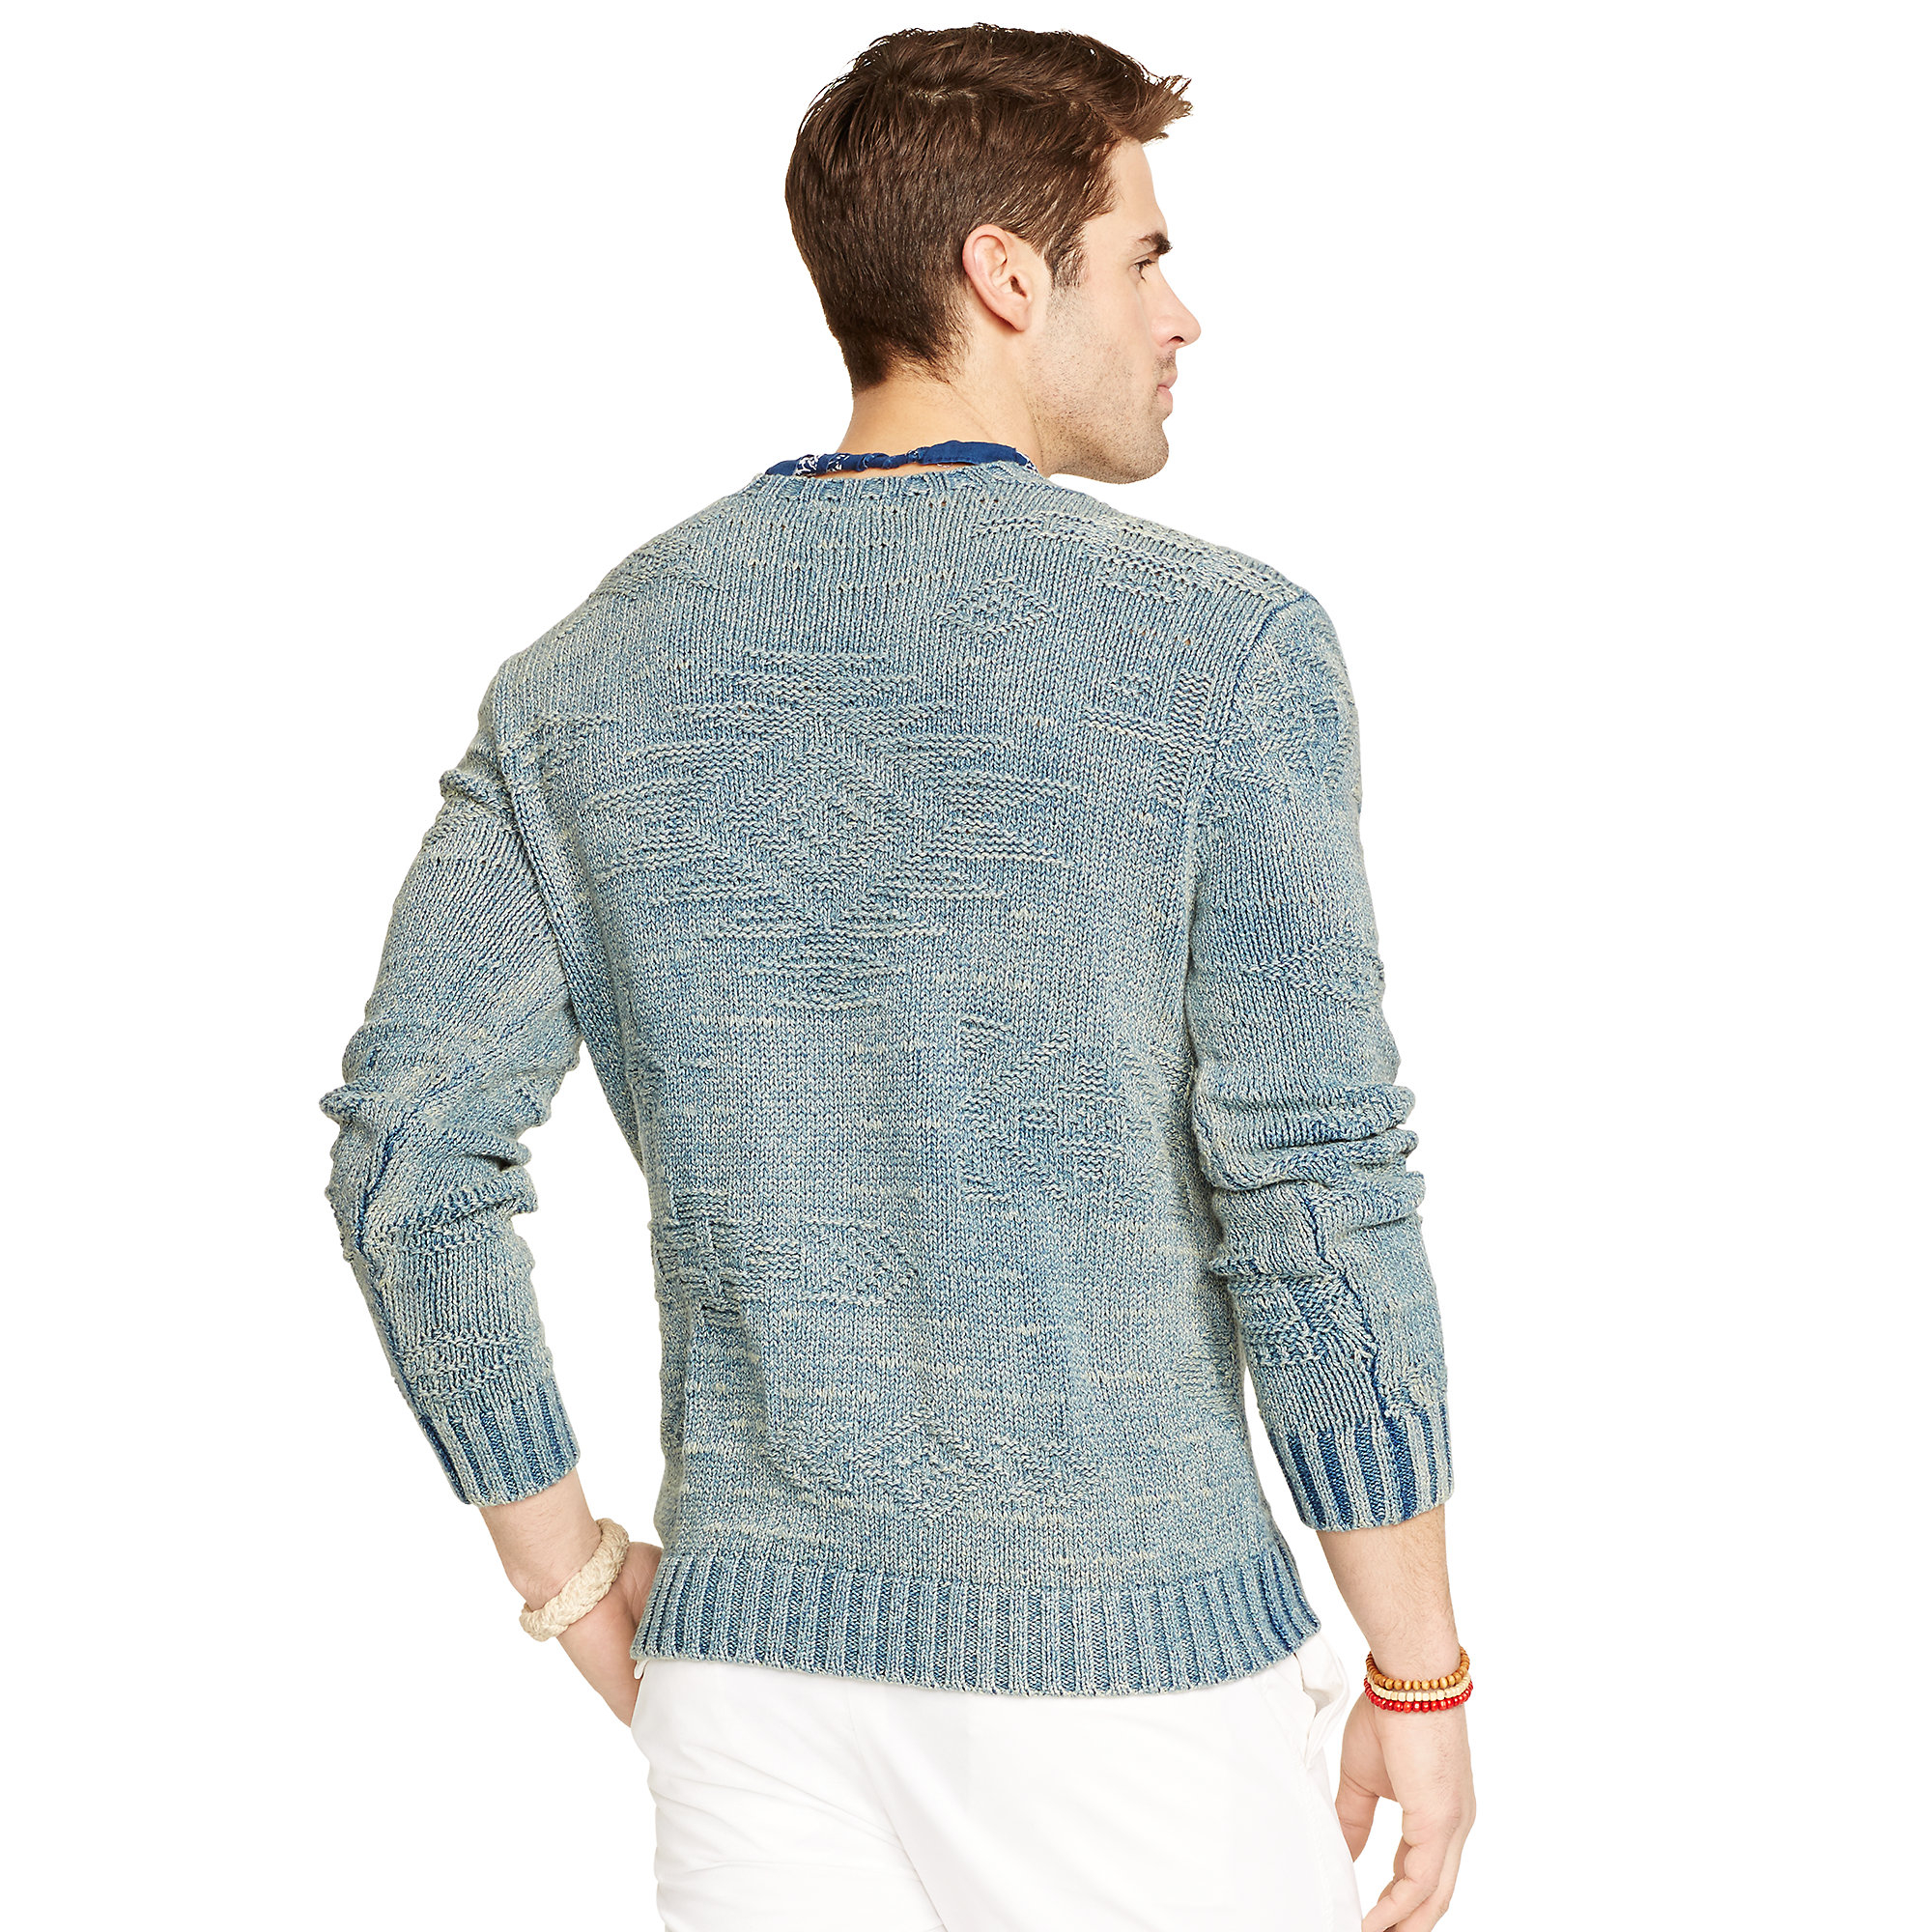 Polo ralph lauren Indigo-dyed Cotton Sweater in Blue for Men   Lyst